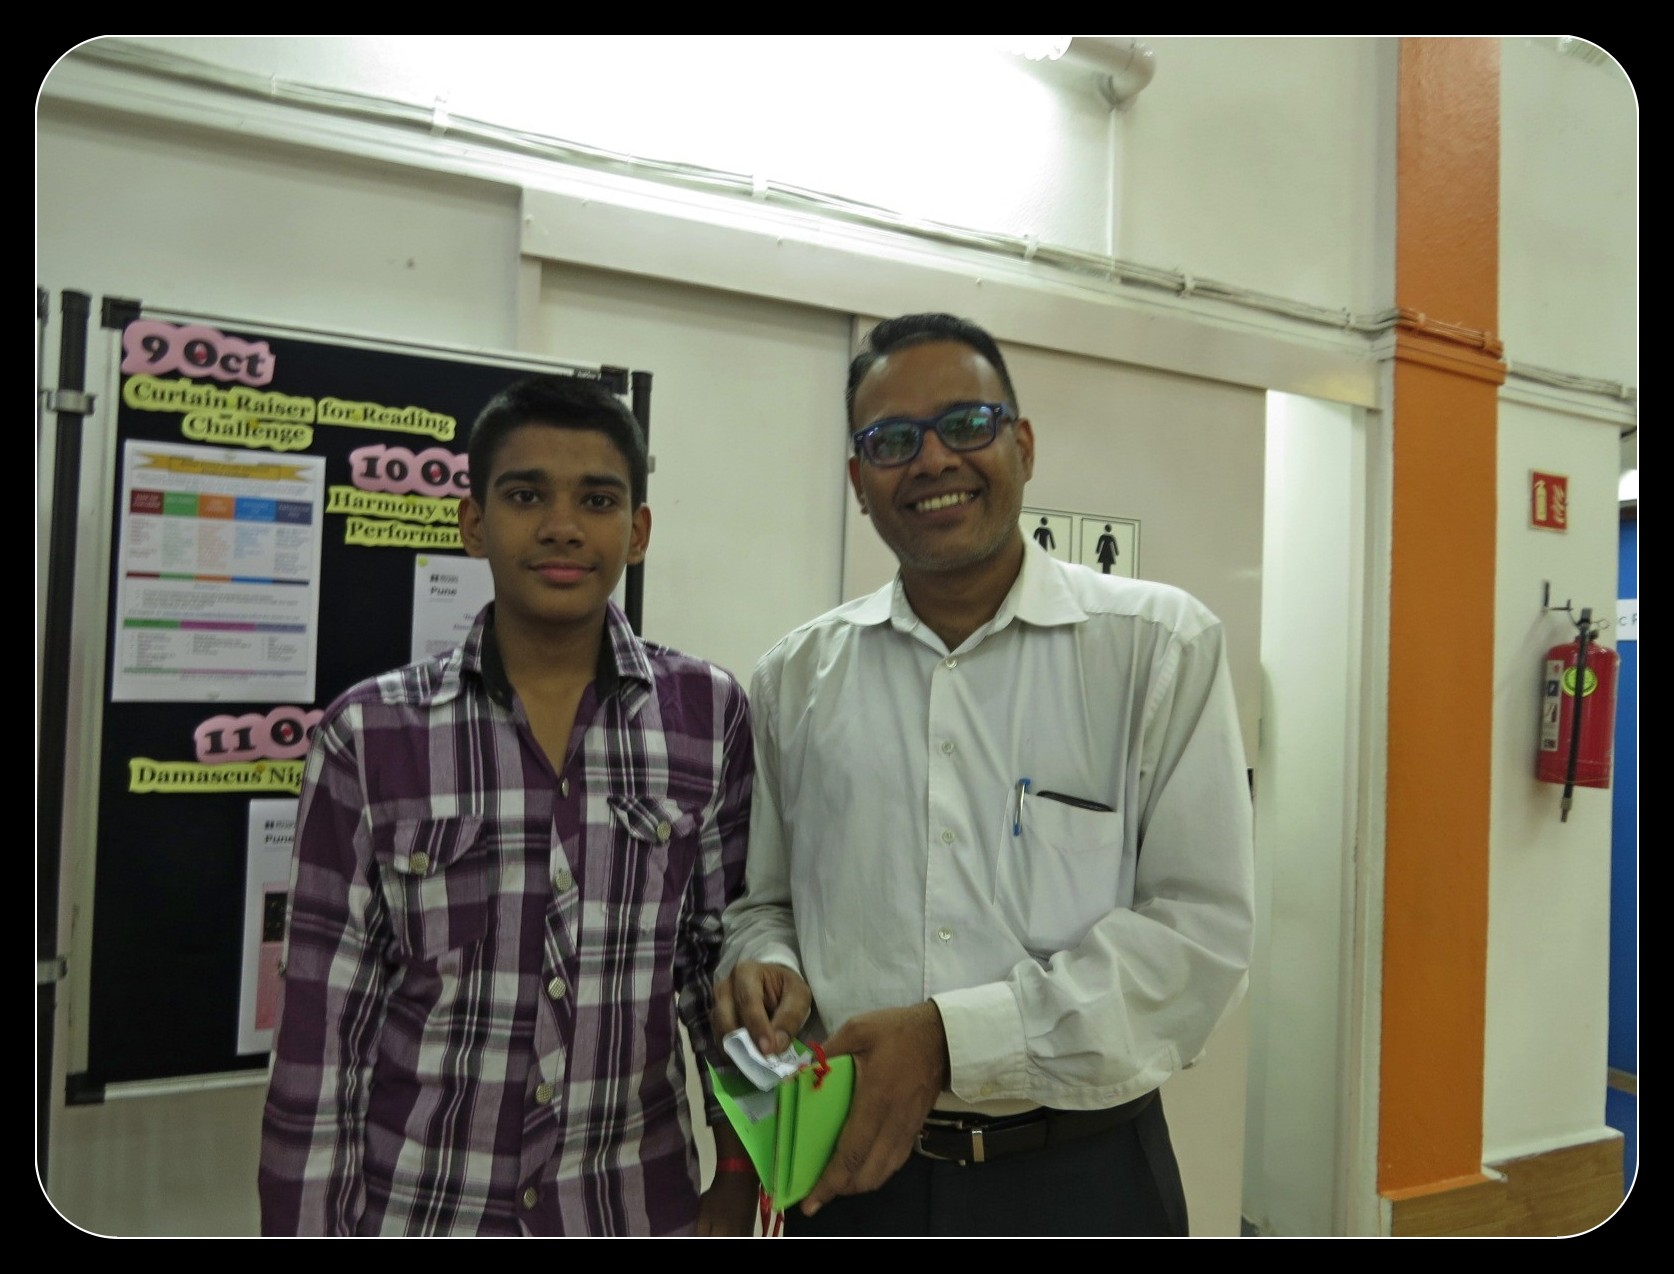 Atharva & Ashwin, the winners